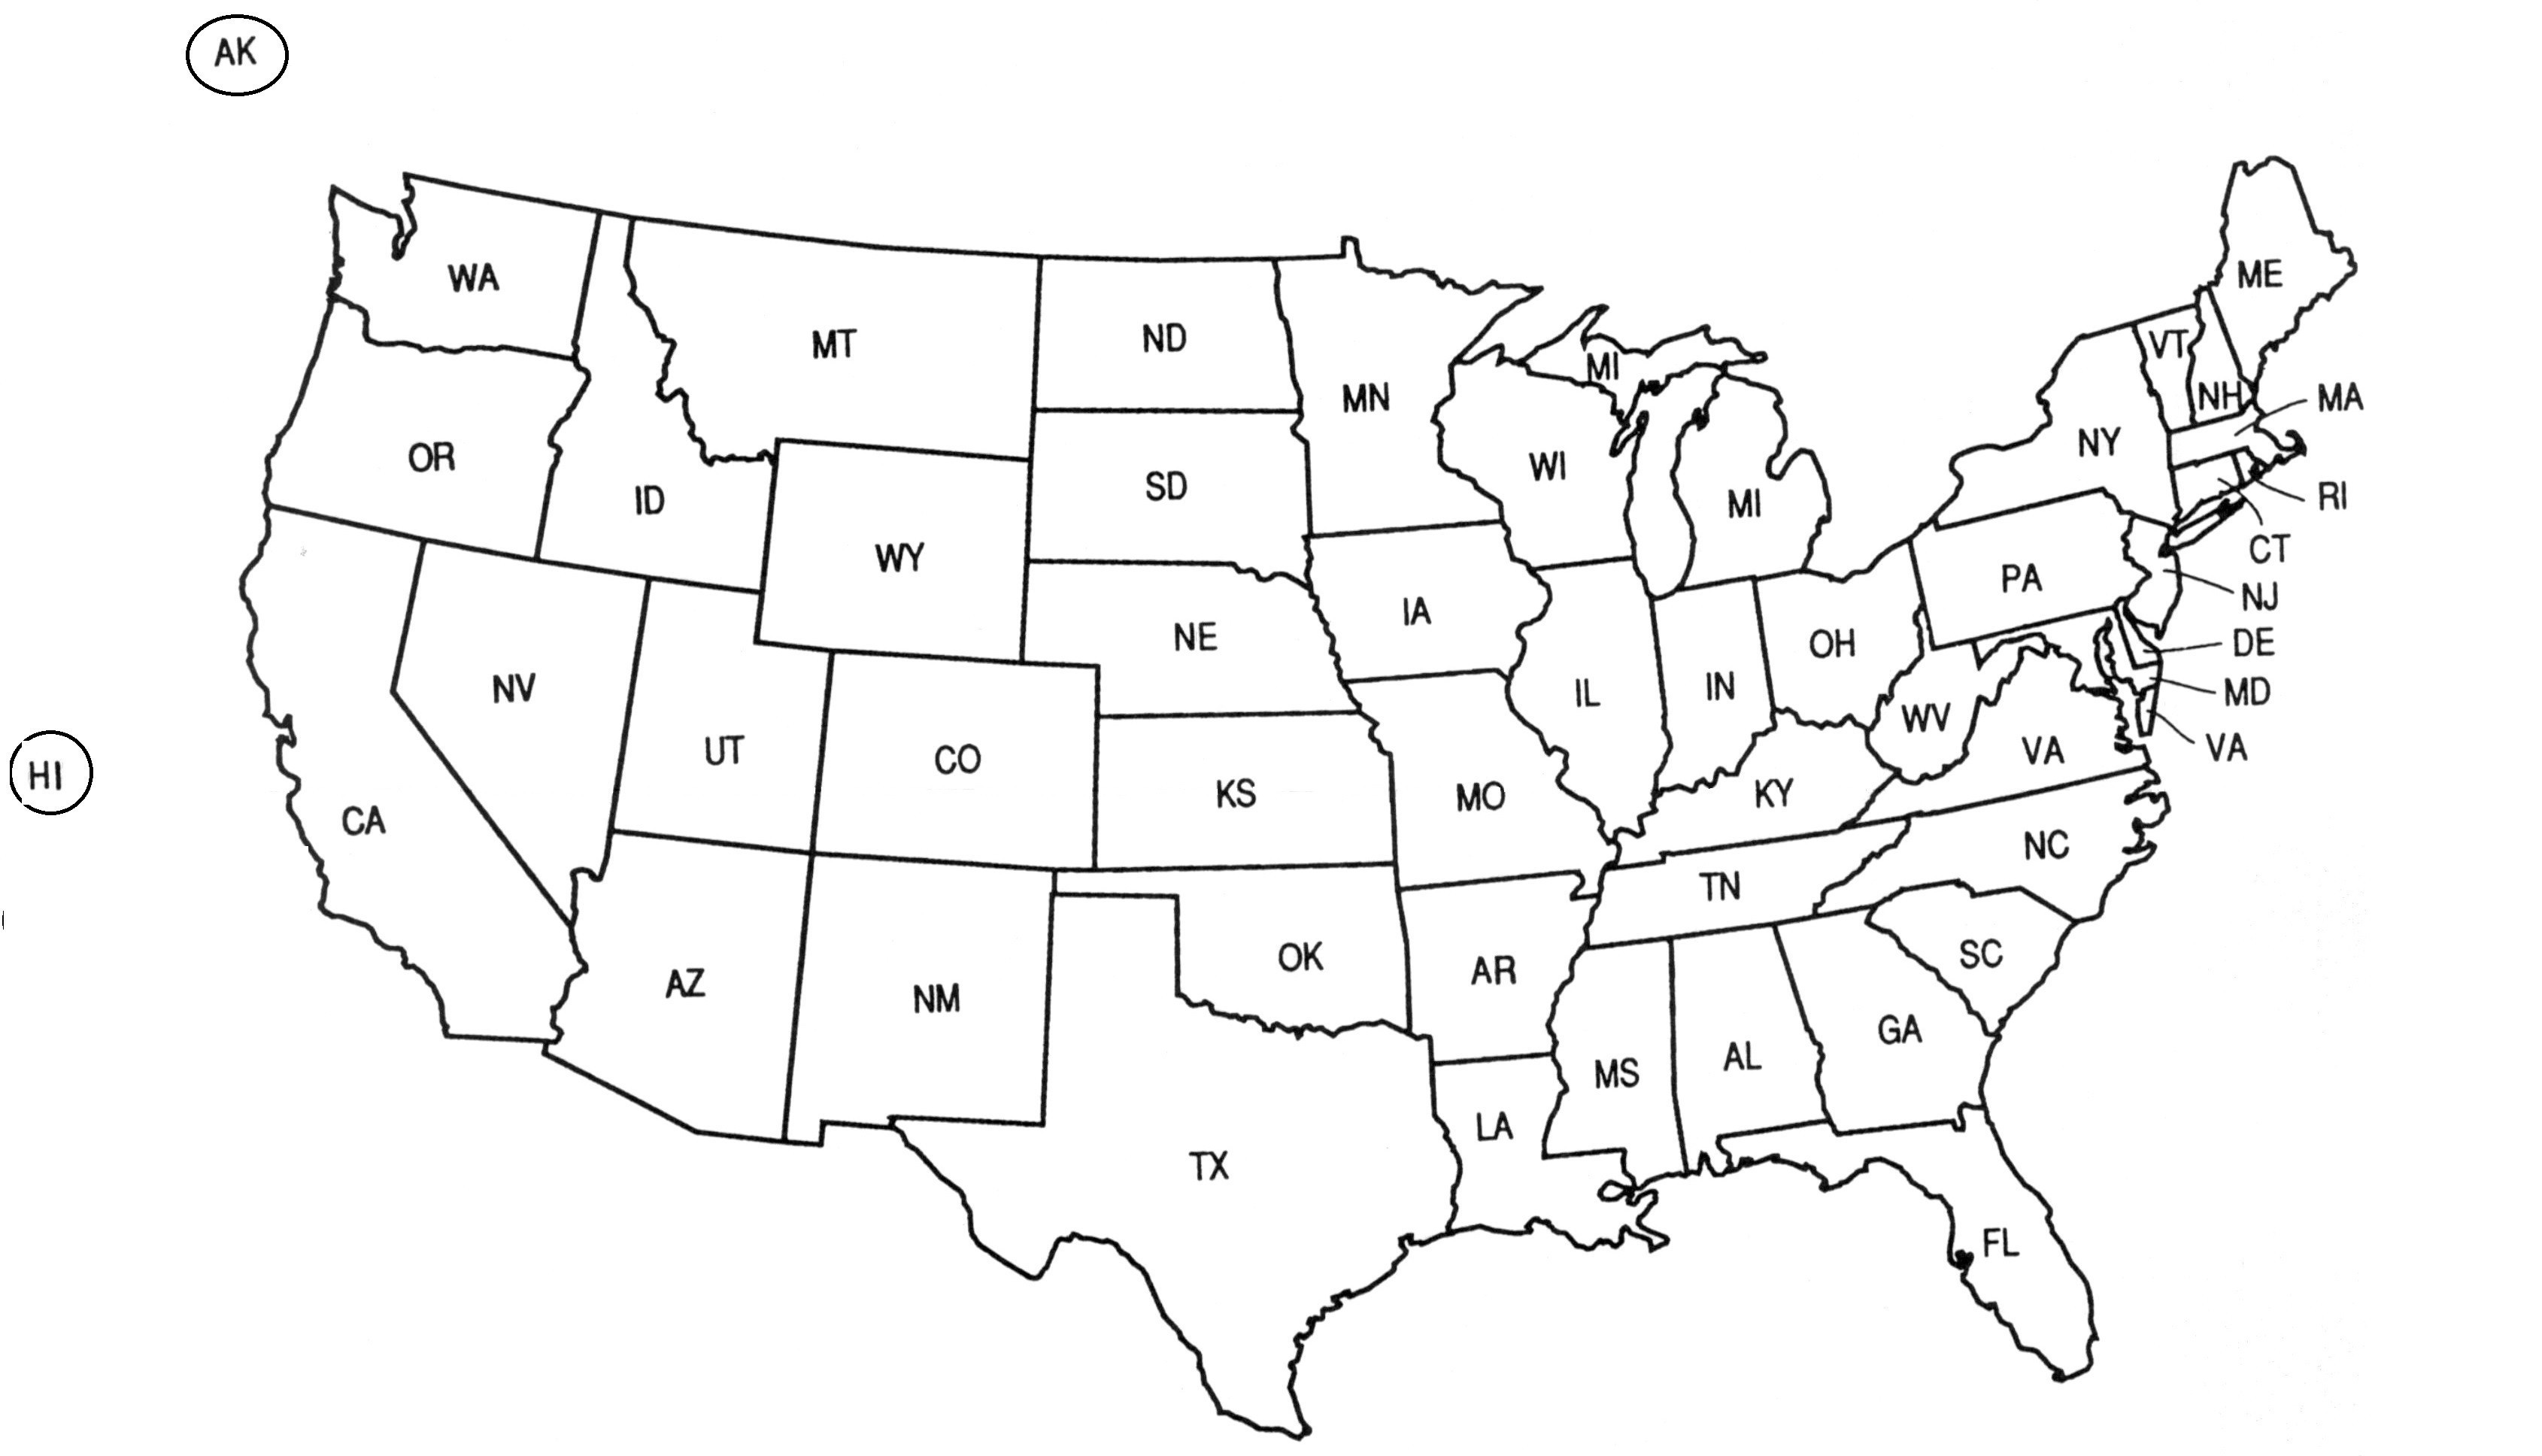 Printable Map Of The United States In Black And White Elegant Us Map W State Abbreviations Us Map Abbreviations Us Map Valid